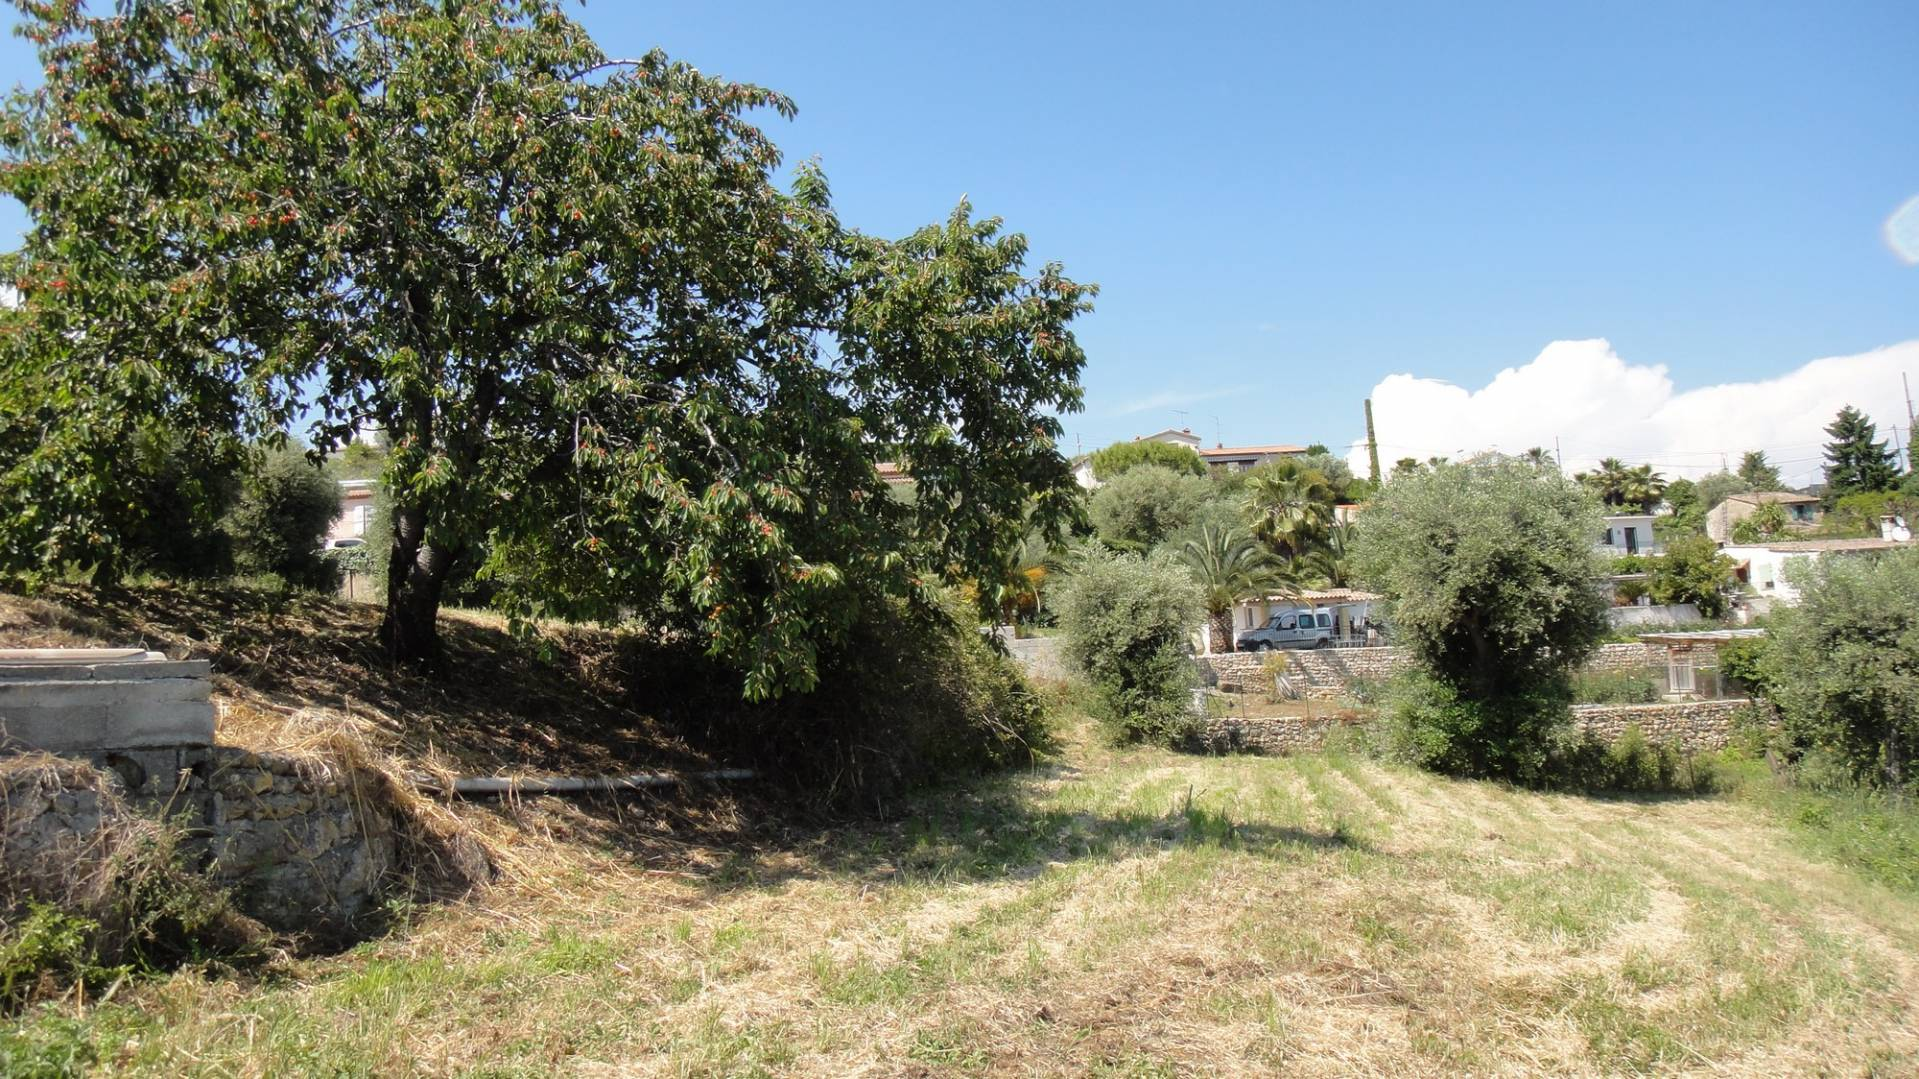 Sale Building land - Antibes